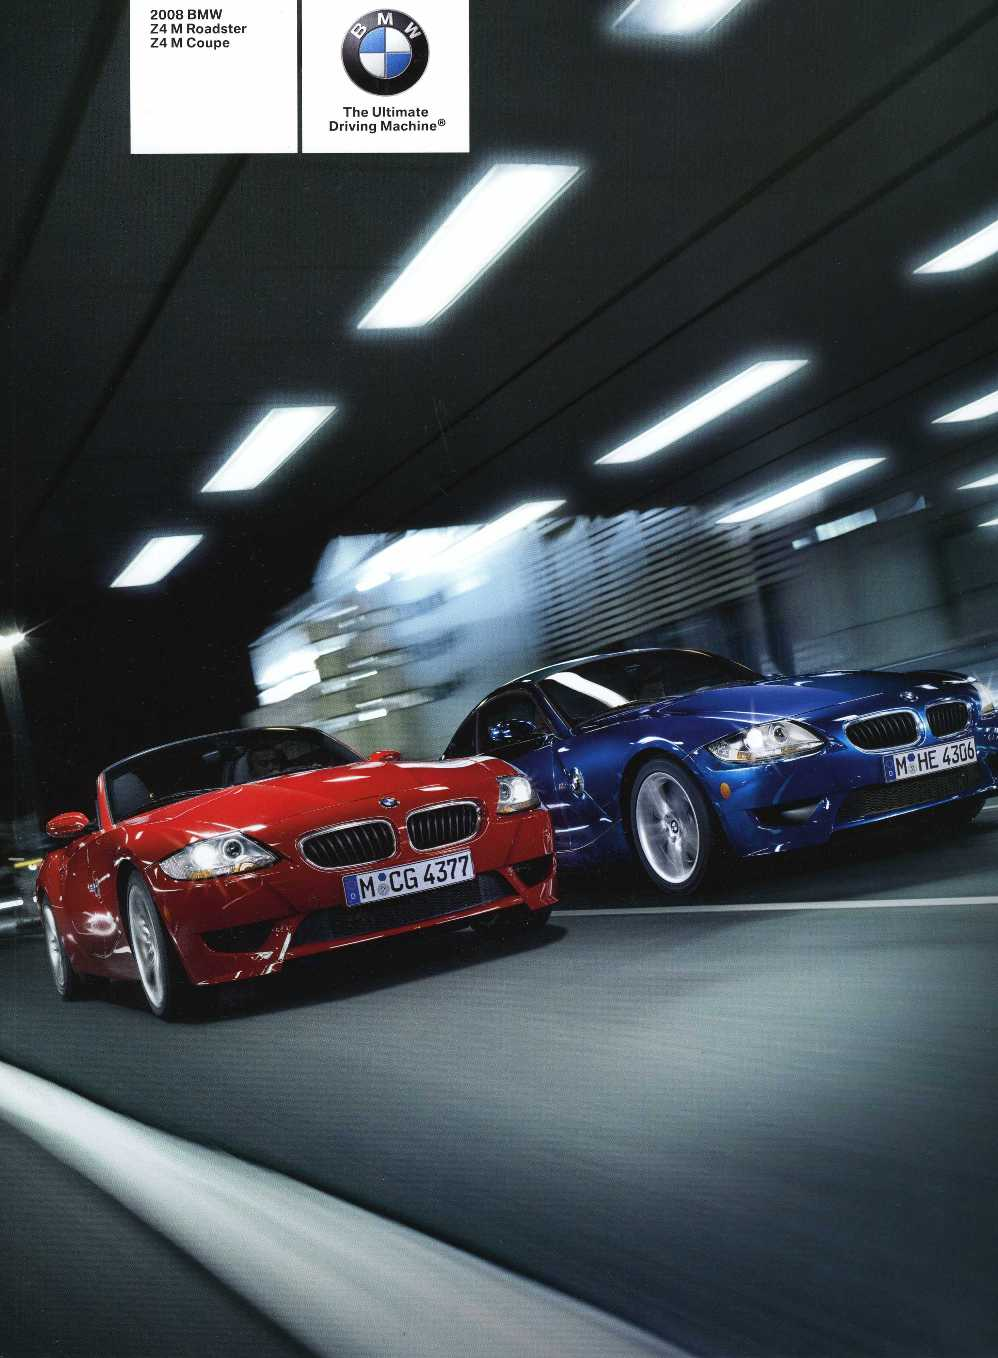 2008 BMW Z4 M Roadster Z4 M Coupe - E85 / E86 Brochure (2nd version) - S 9.3